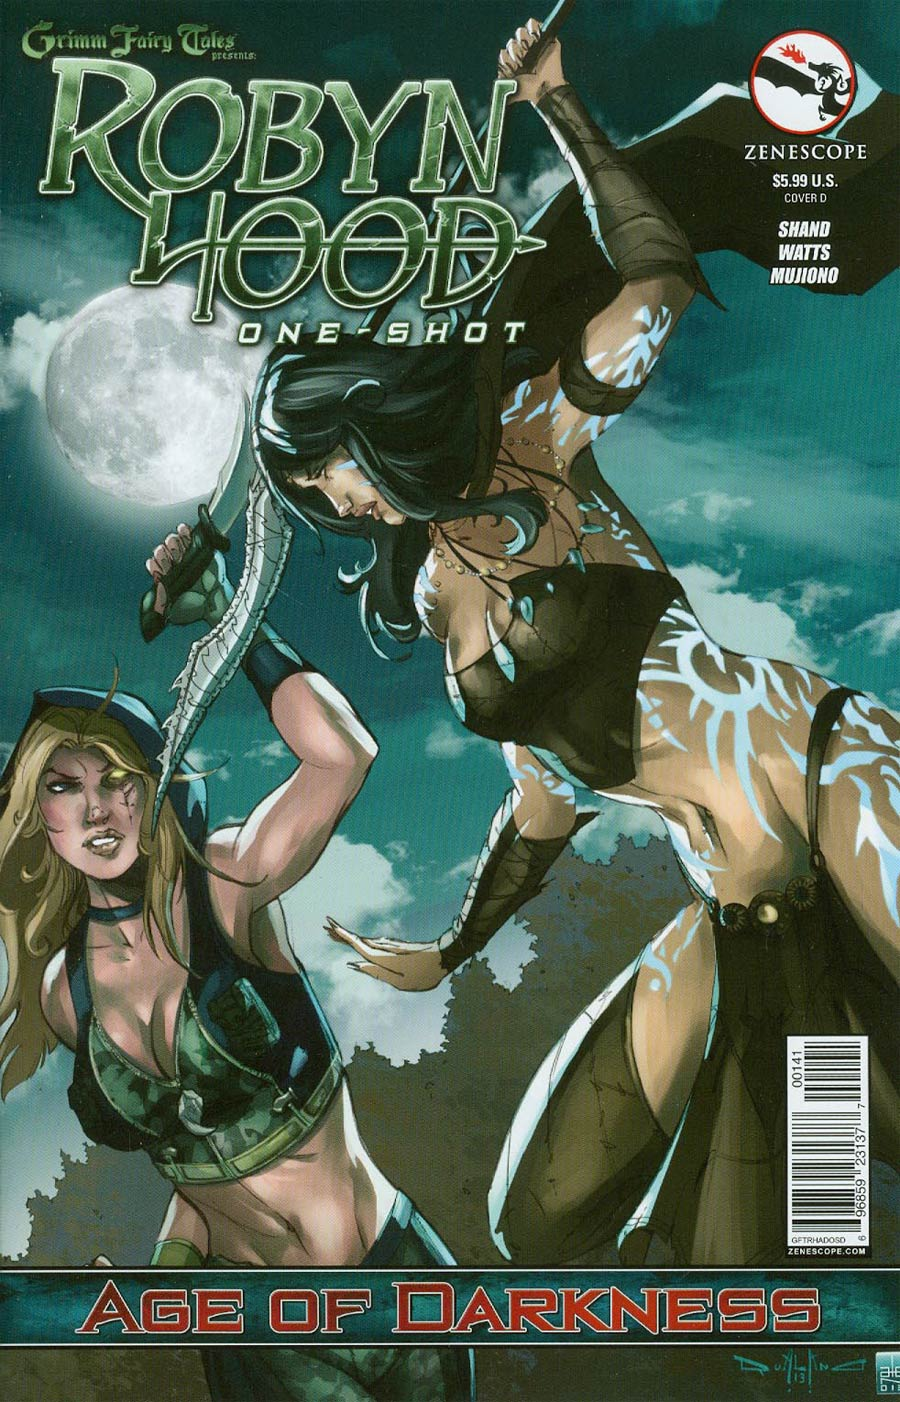 Grimm Fairy Tales Presents Robyn Hood Age Of Darkness Cover D Pasquale Qualano (Age Of Darkness Tie-In)